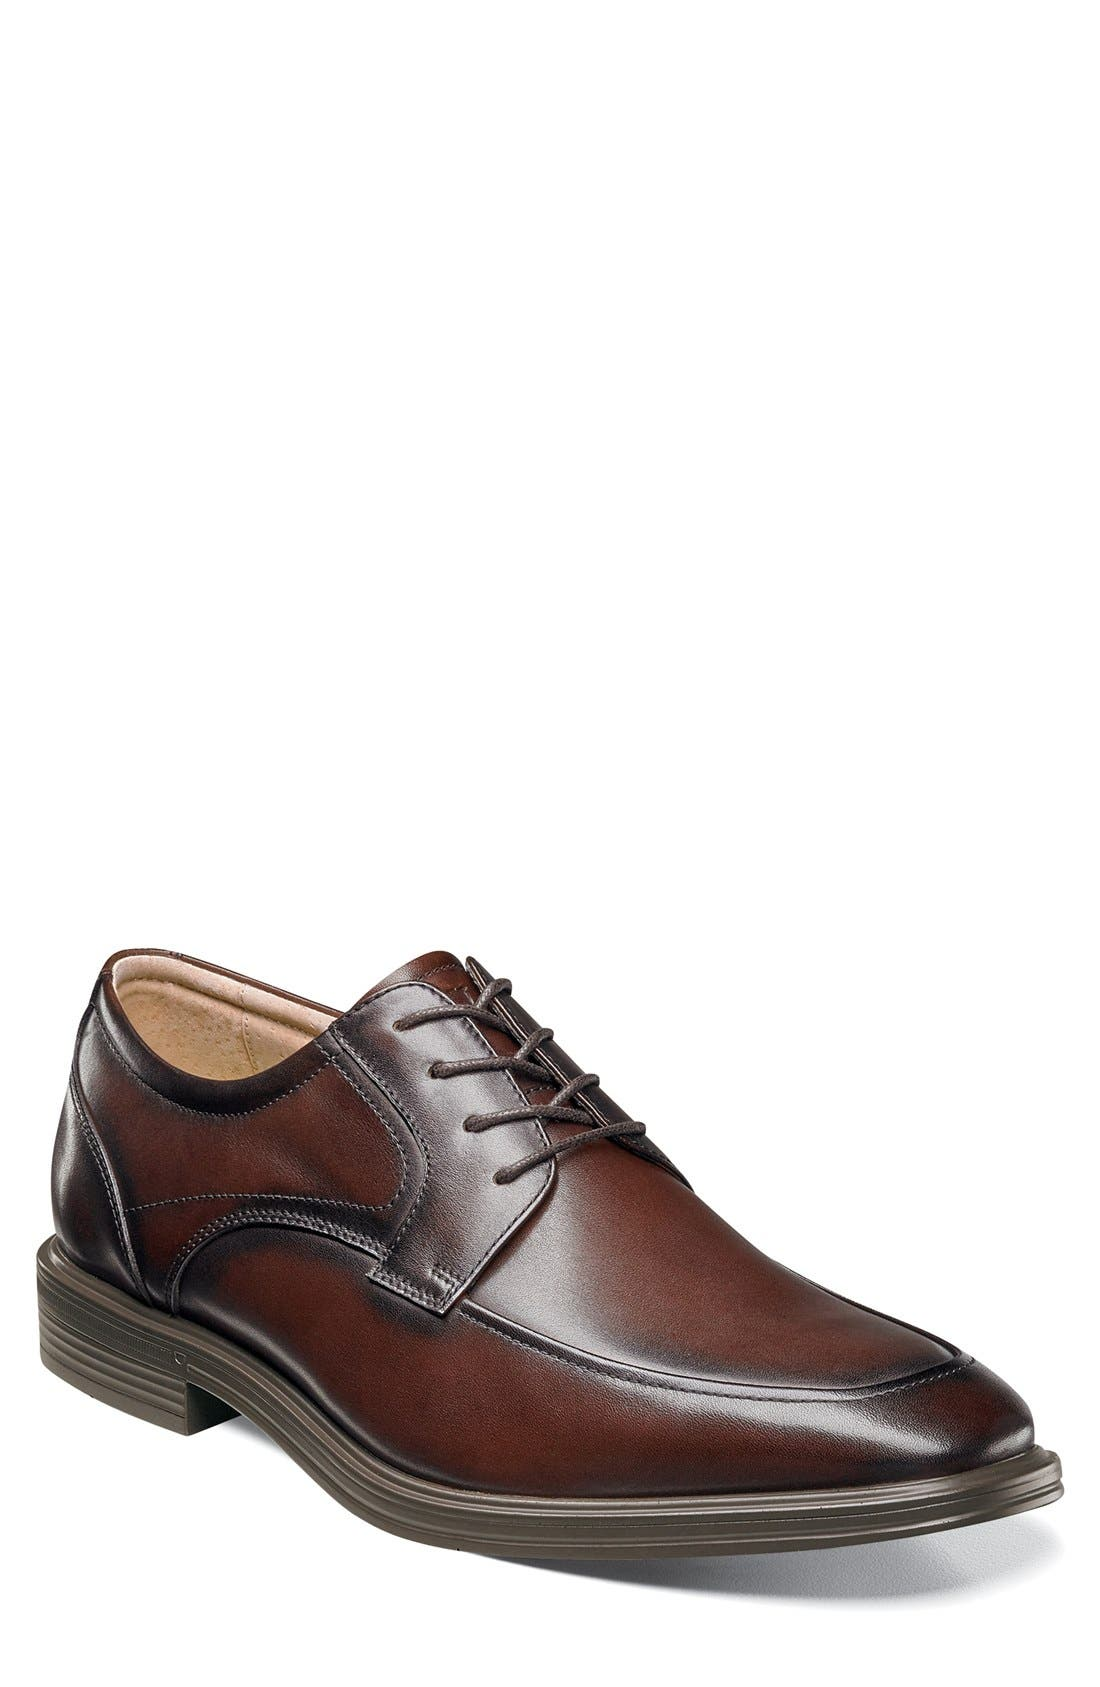 'Heights' Apron Toe Derby,                         Main,                         color, BROWN LEATHER